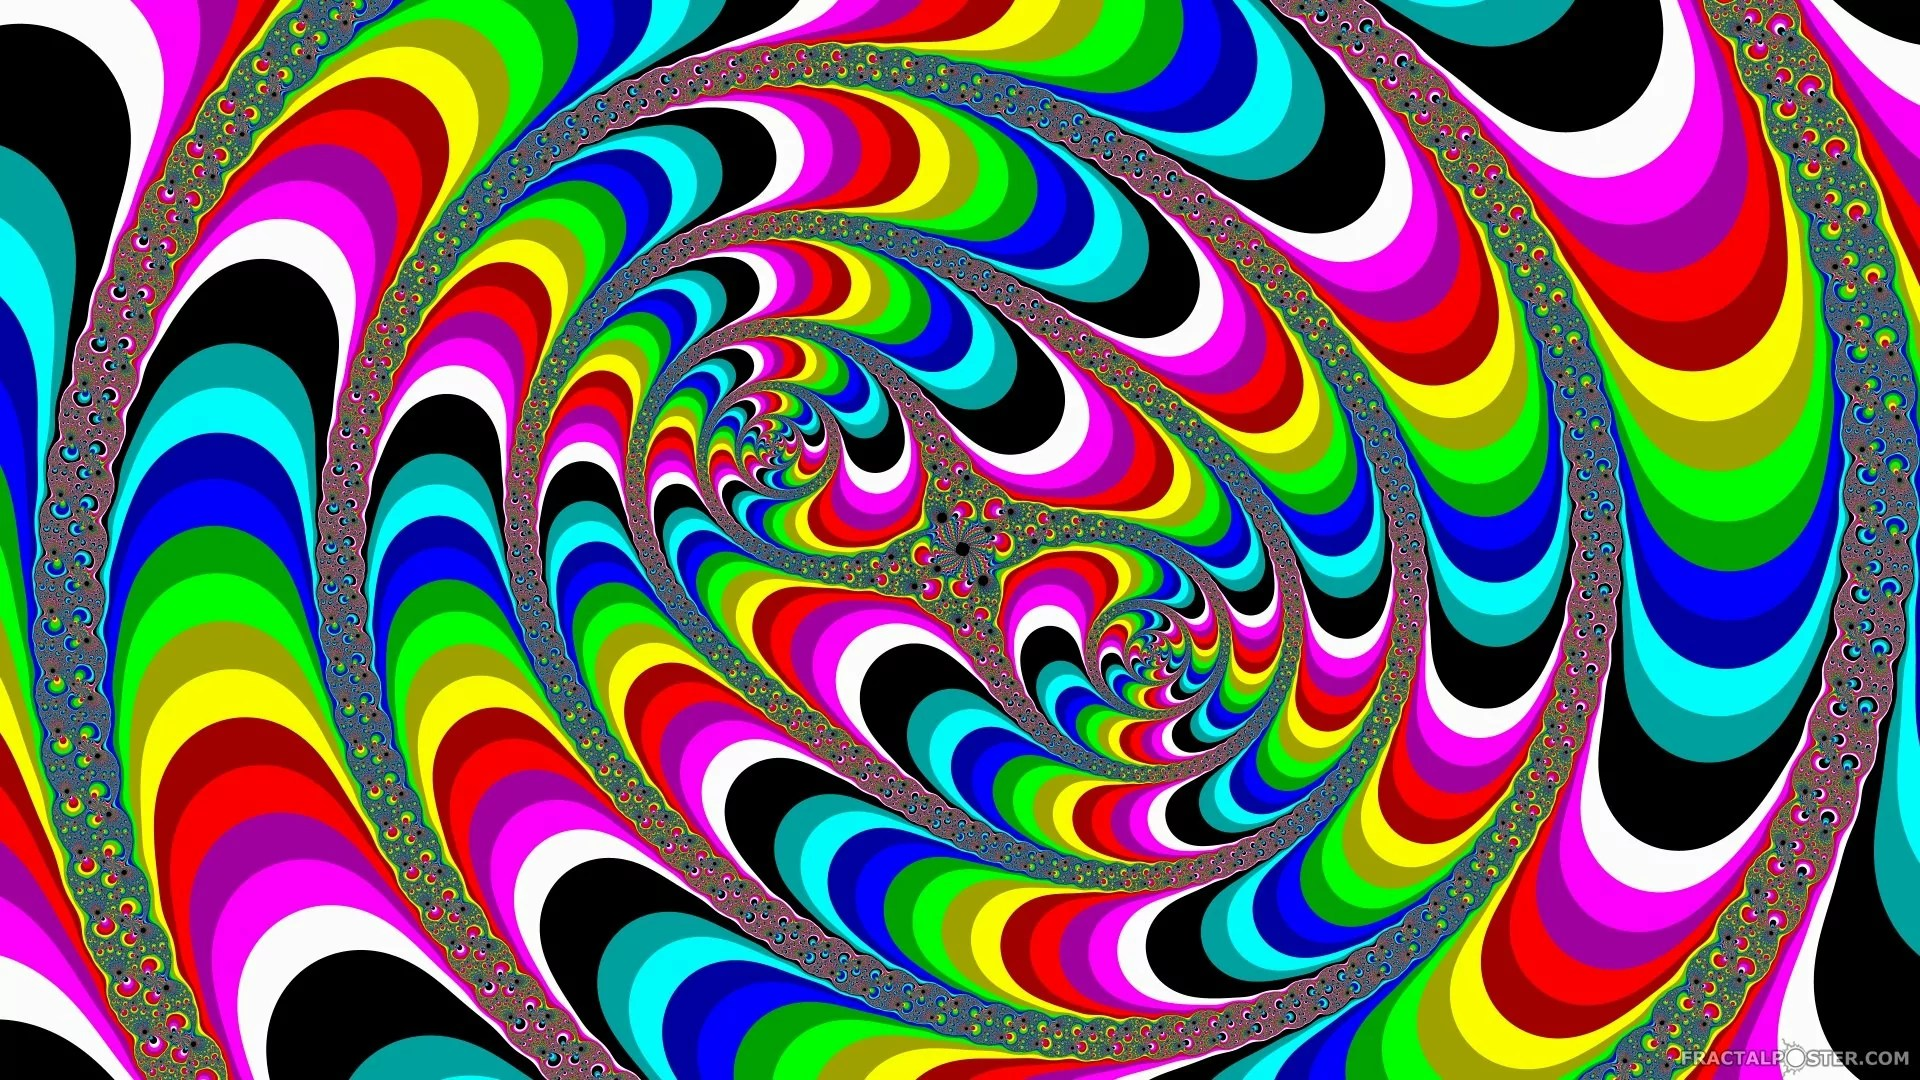 Cool Trippy Wallpaper Colorful